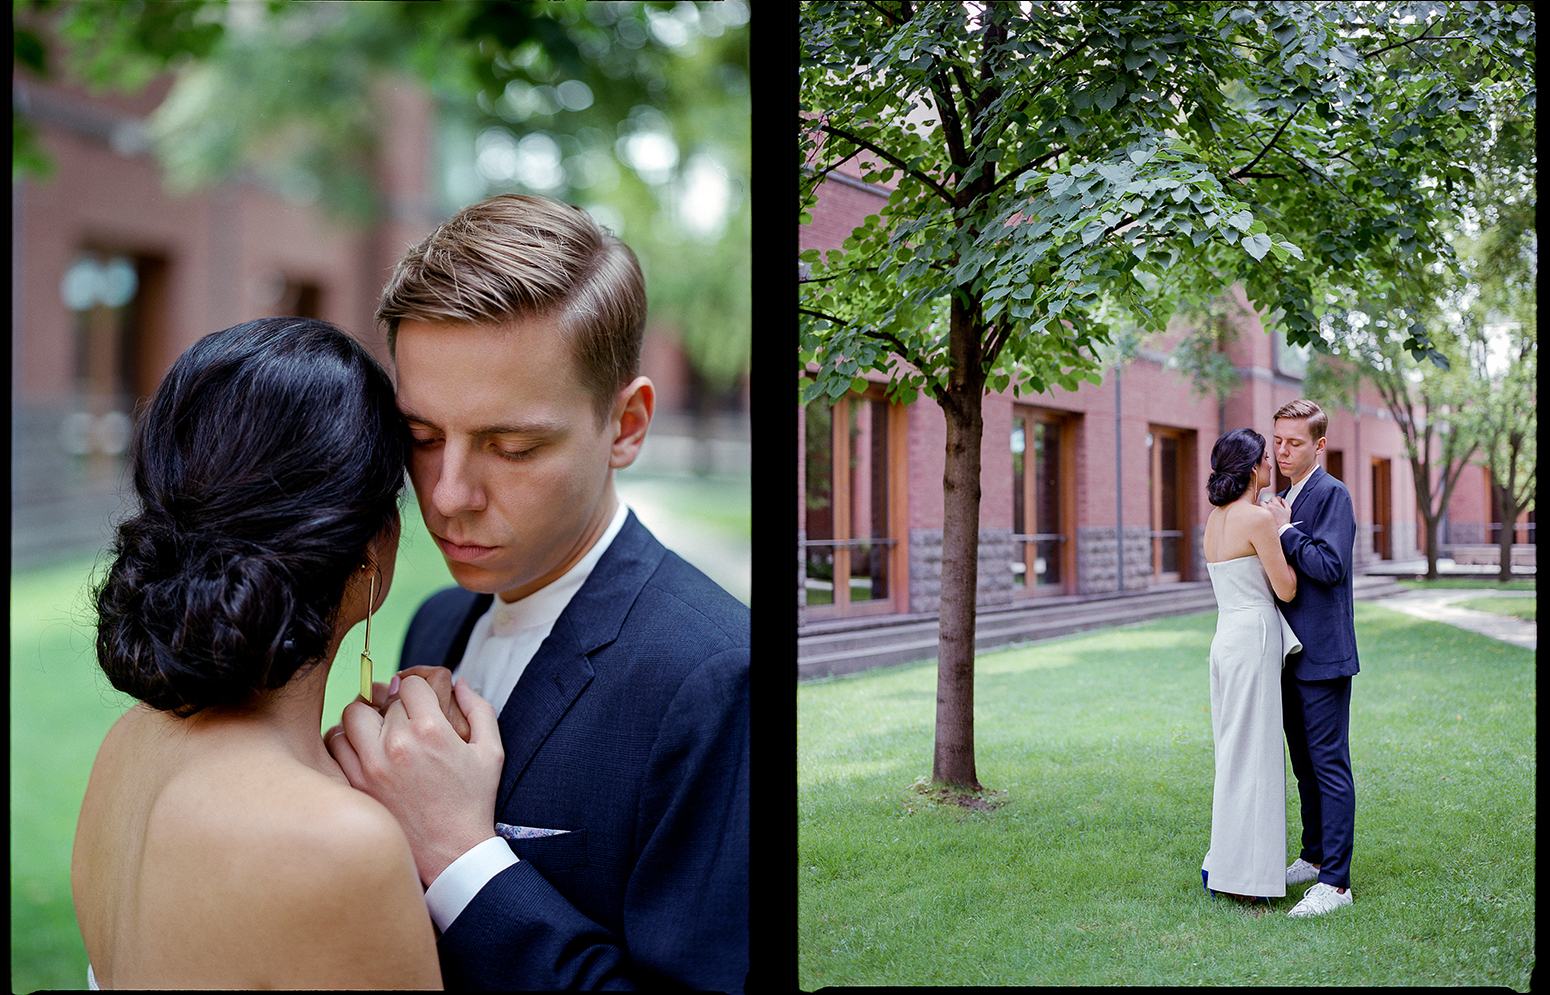 2-Best-Documentary-Wedding-Photographers-Toronto-Analog-Film-Photographer-Downtown-Kensington-Market-City-Bride-Bridal-Jumpsuit-Style-Inspiration-Bride-and-Groom-Cool-vibes-candid-editorial-Groom-Portrait.jpg